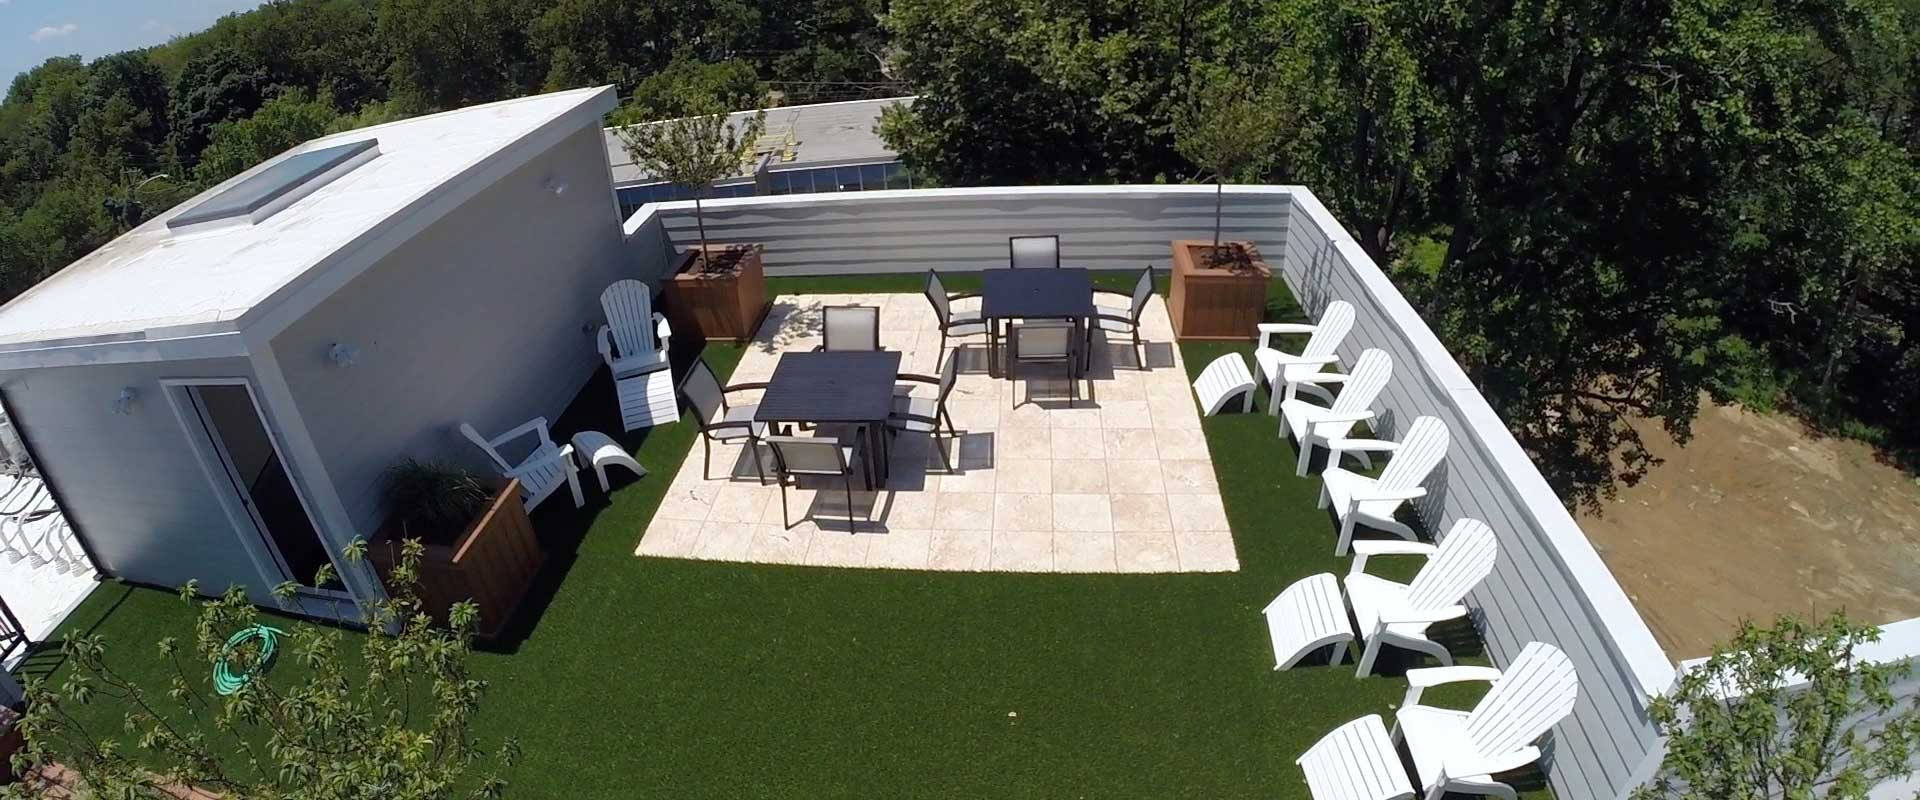 Roof top with an artificial turf patio lined with lounge chairs